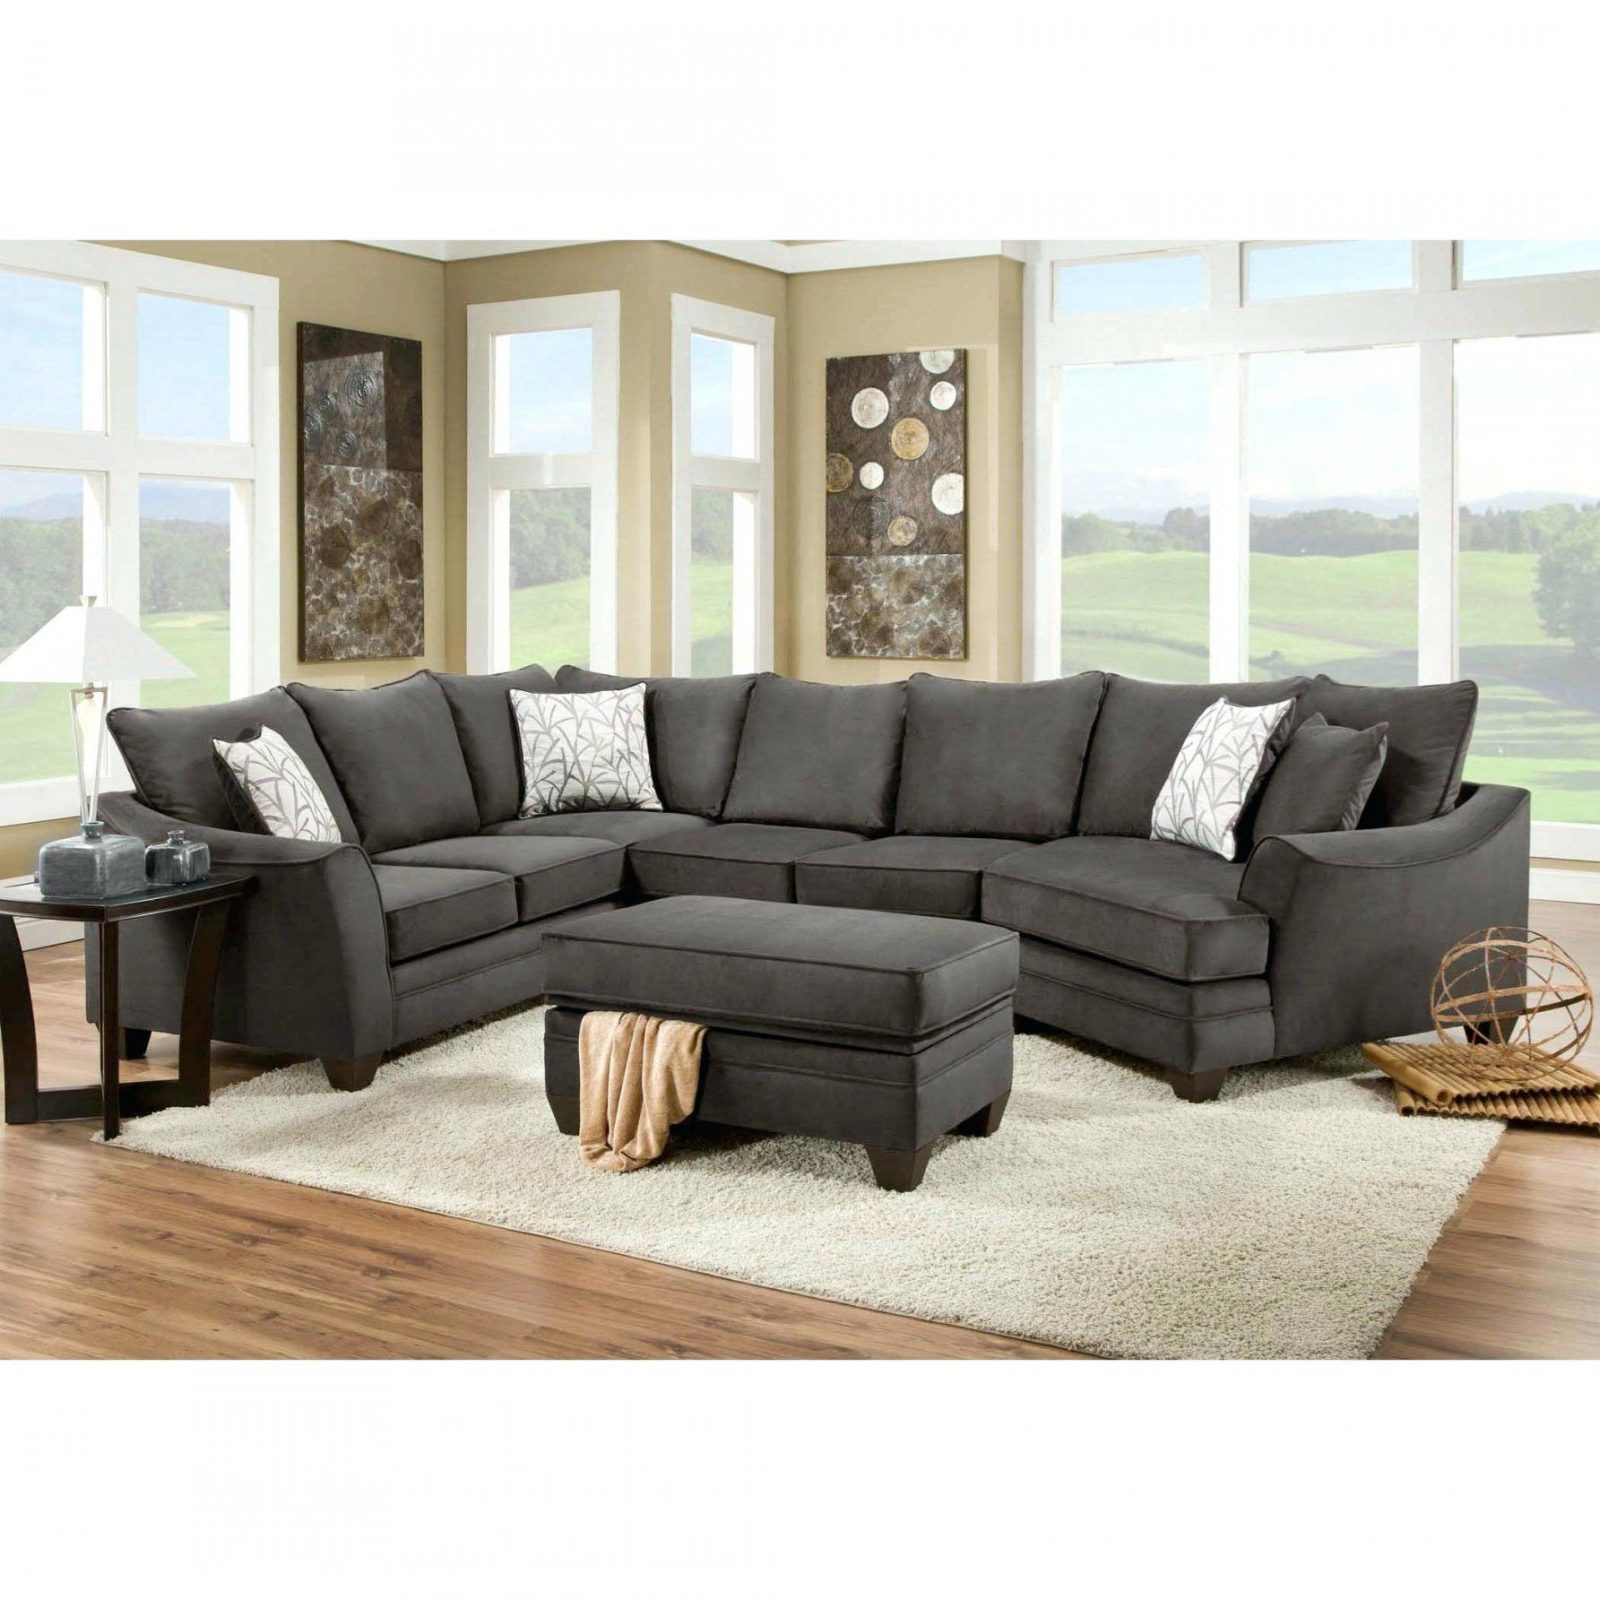 Seats Sofas American Furniture 3810 Sectional Sofa That 5